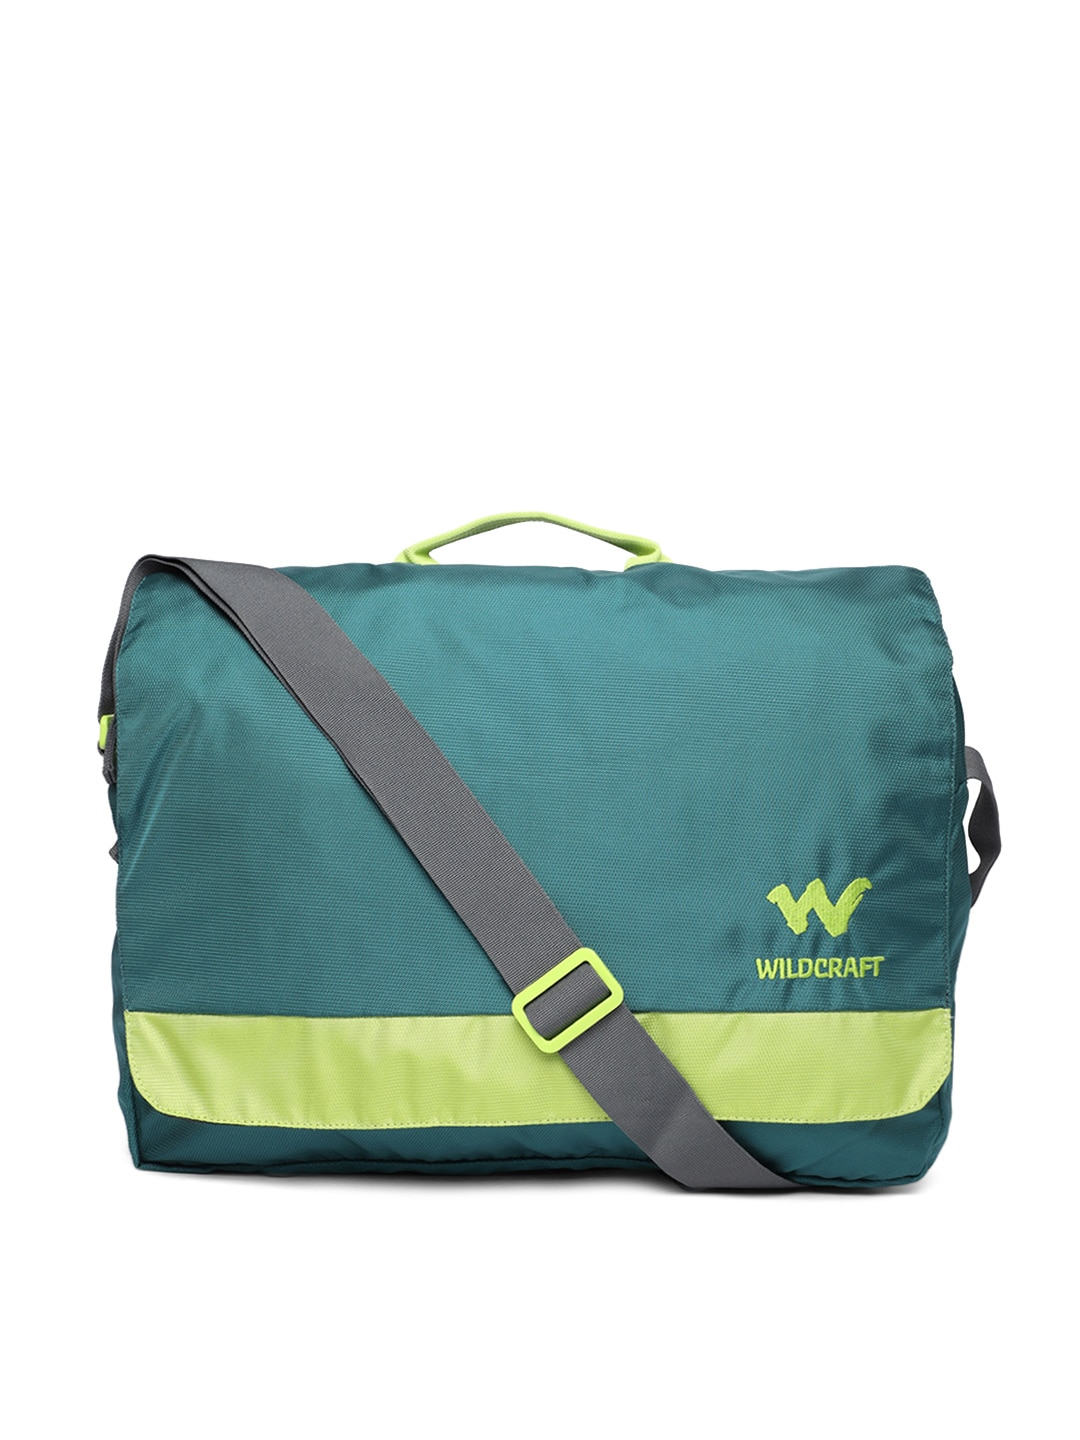 358c3ac7fa Wildcraft School Bags - Buy Wildcraft School Bags Online - Myntra